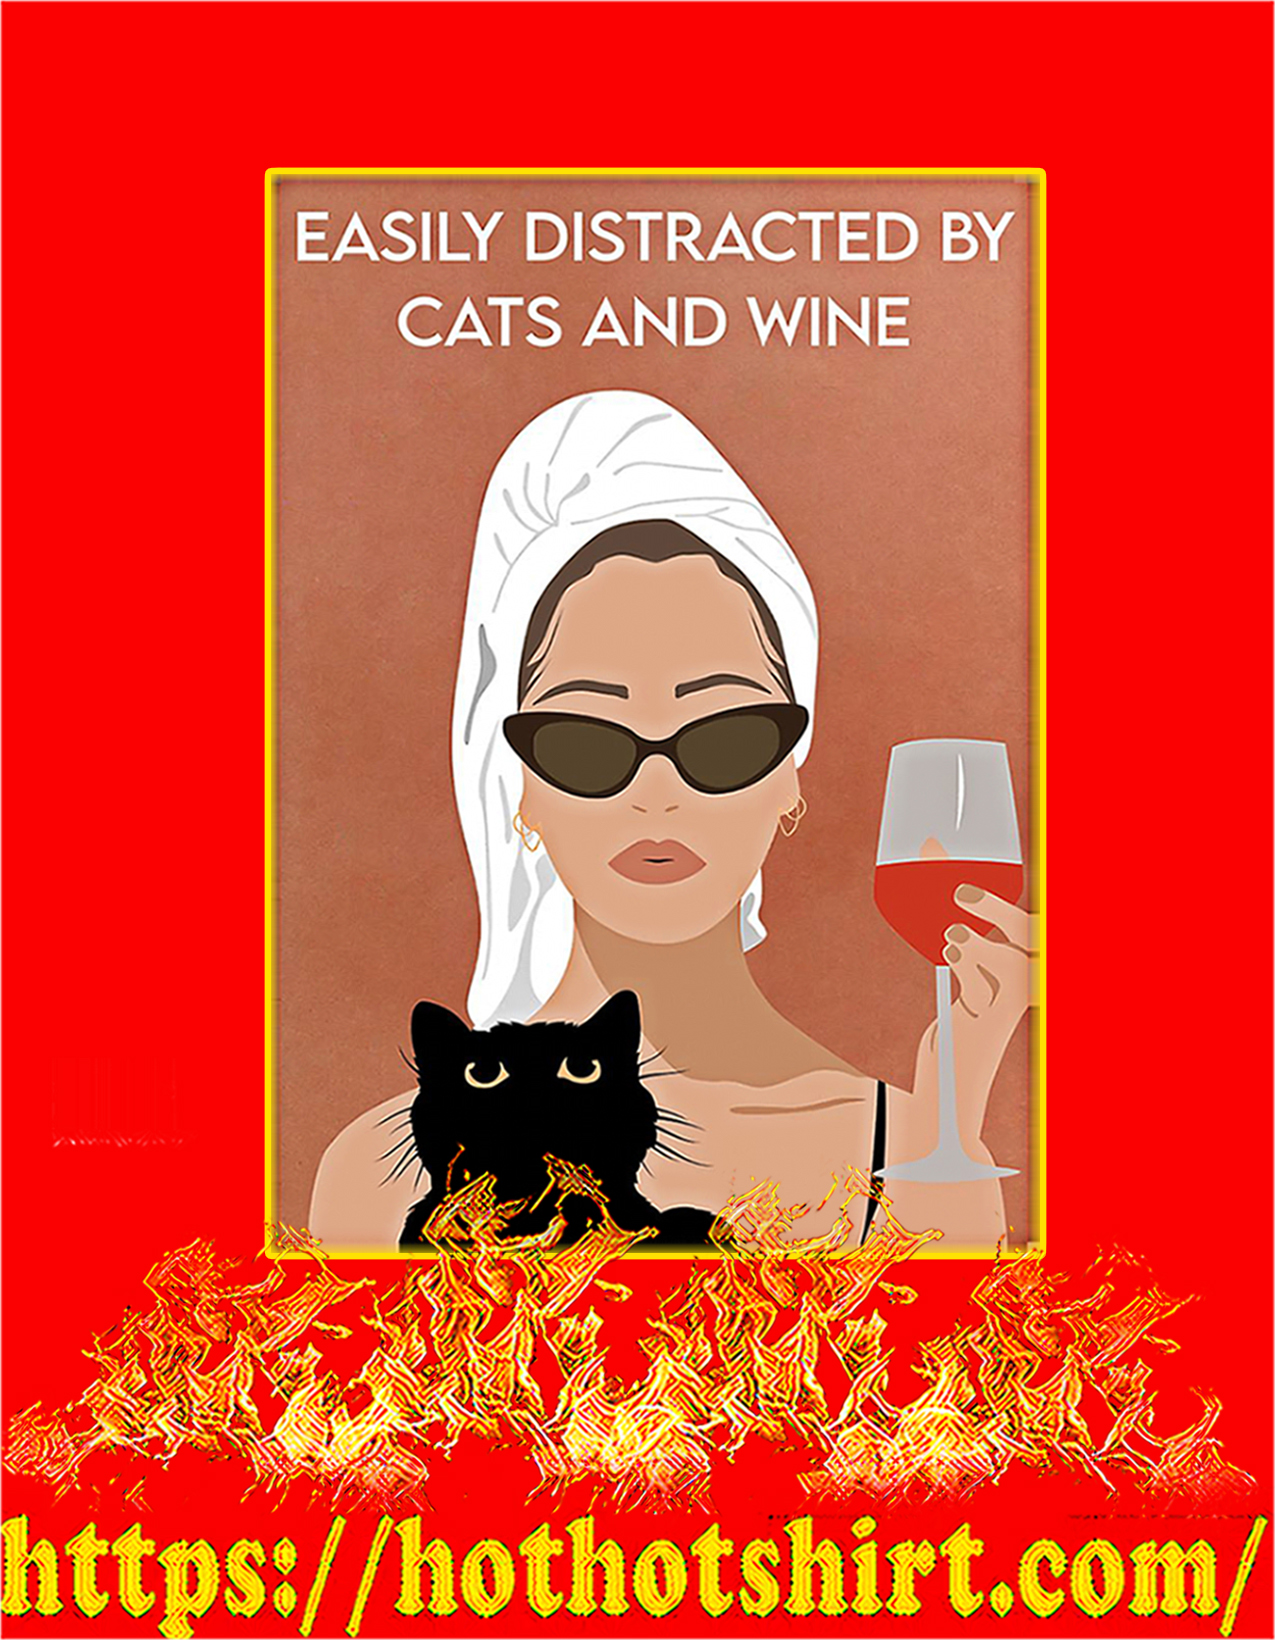 Easily distracted by cats and wine poster - A2